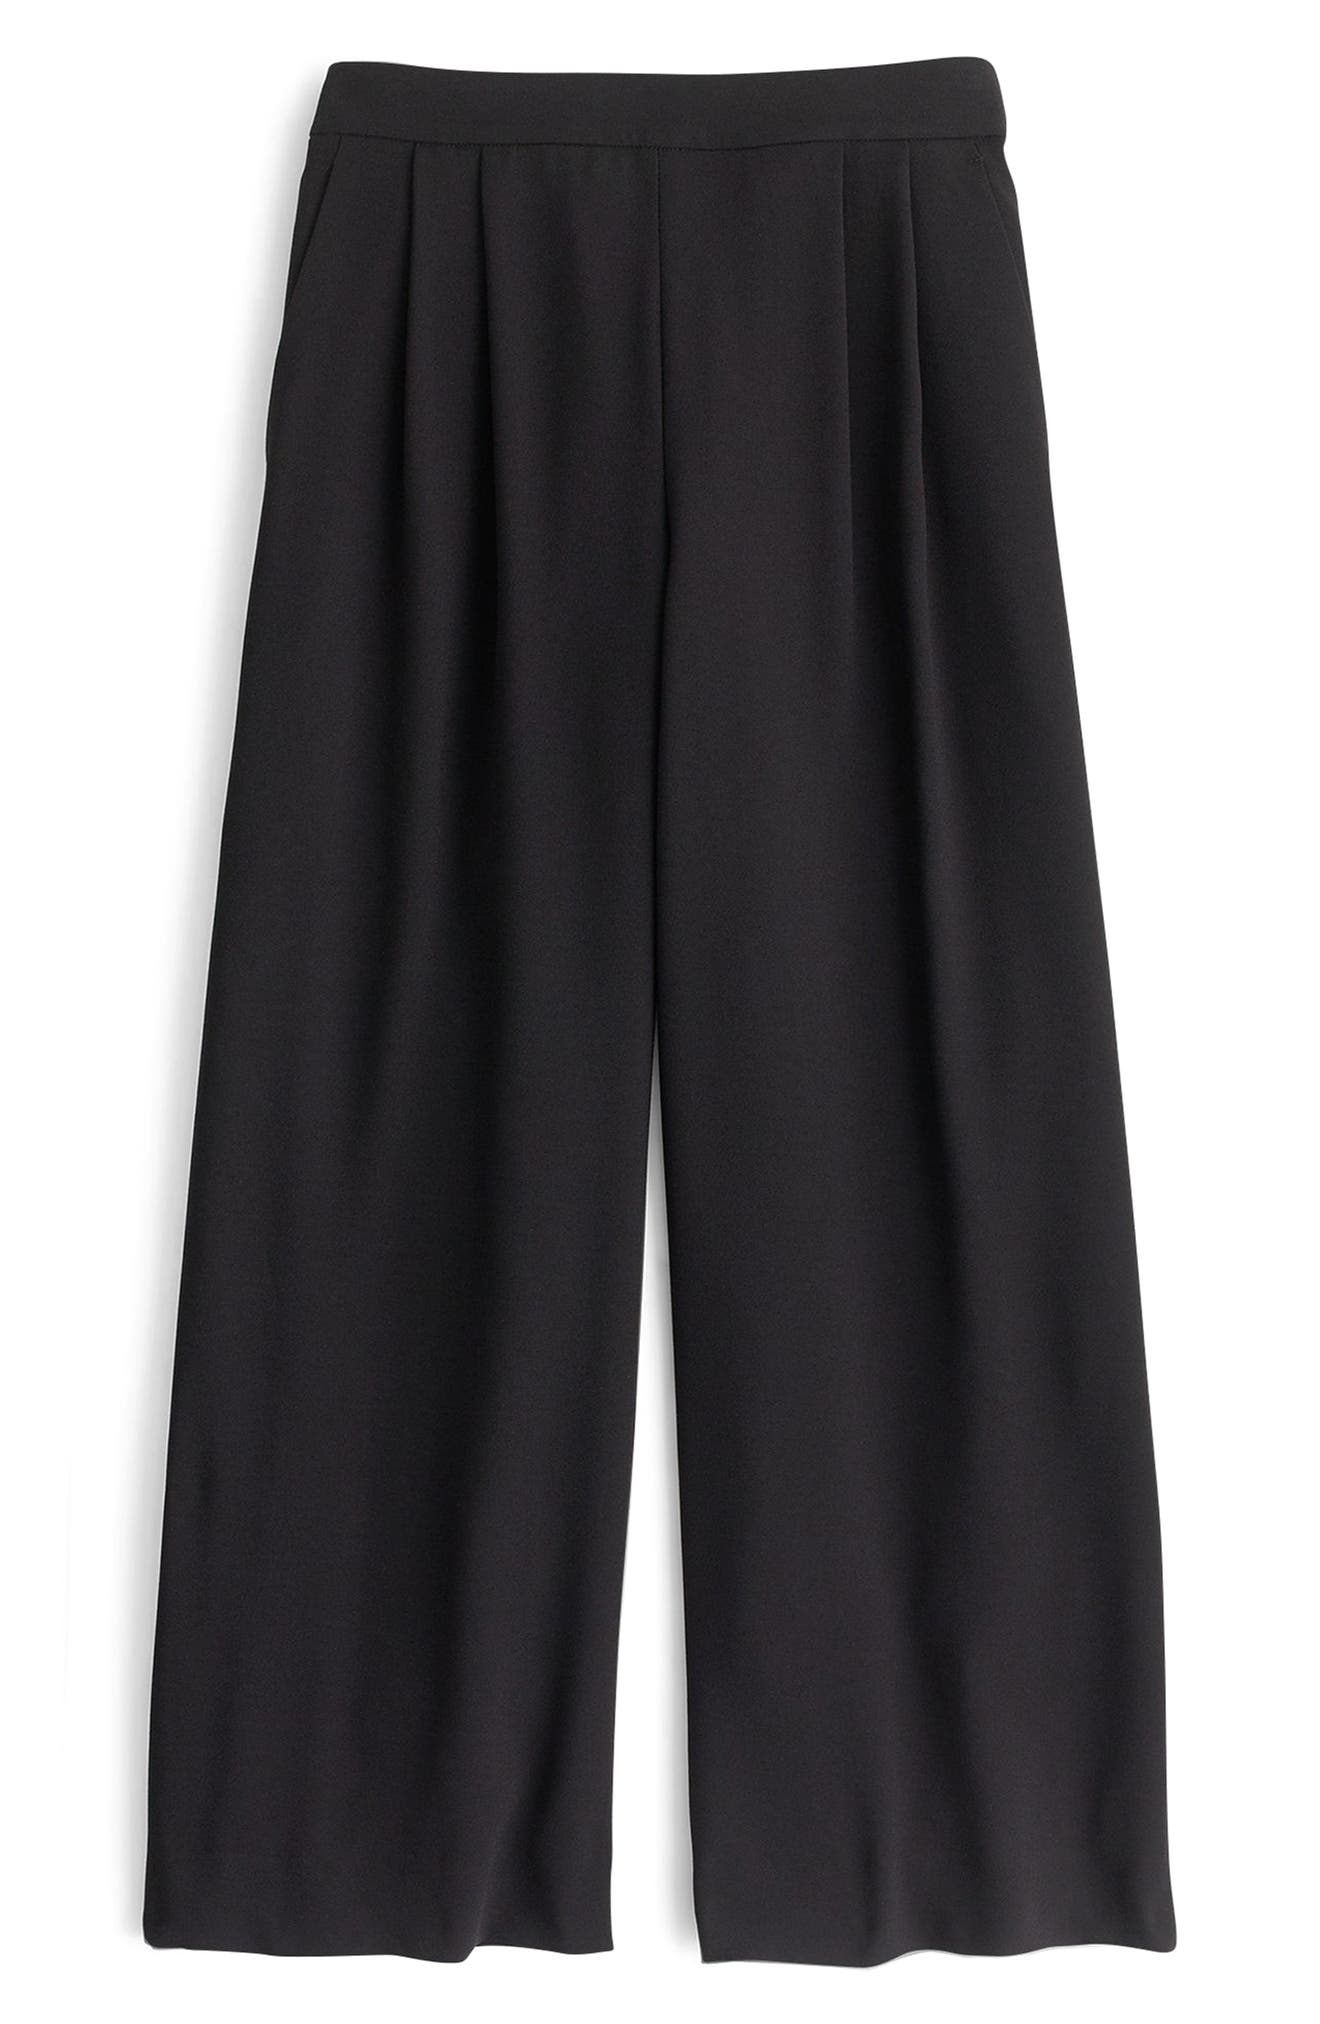 Petite J.crew Wide Leg Crop Pants, Black